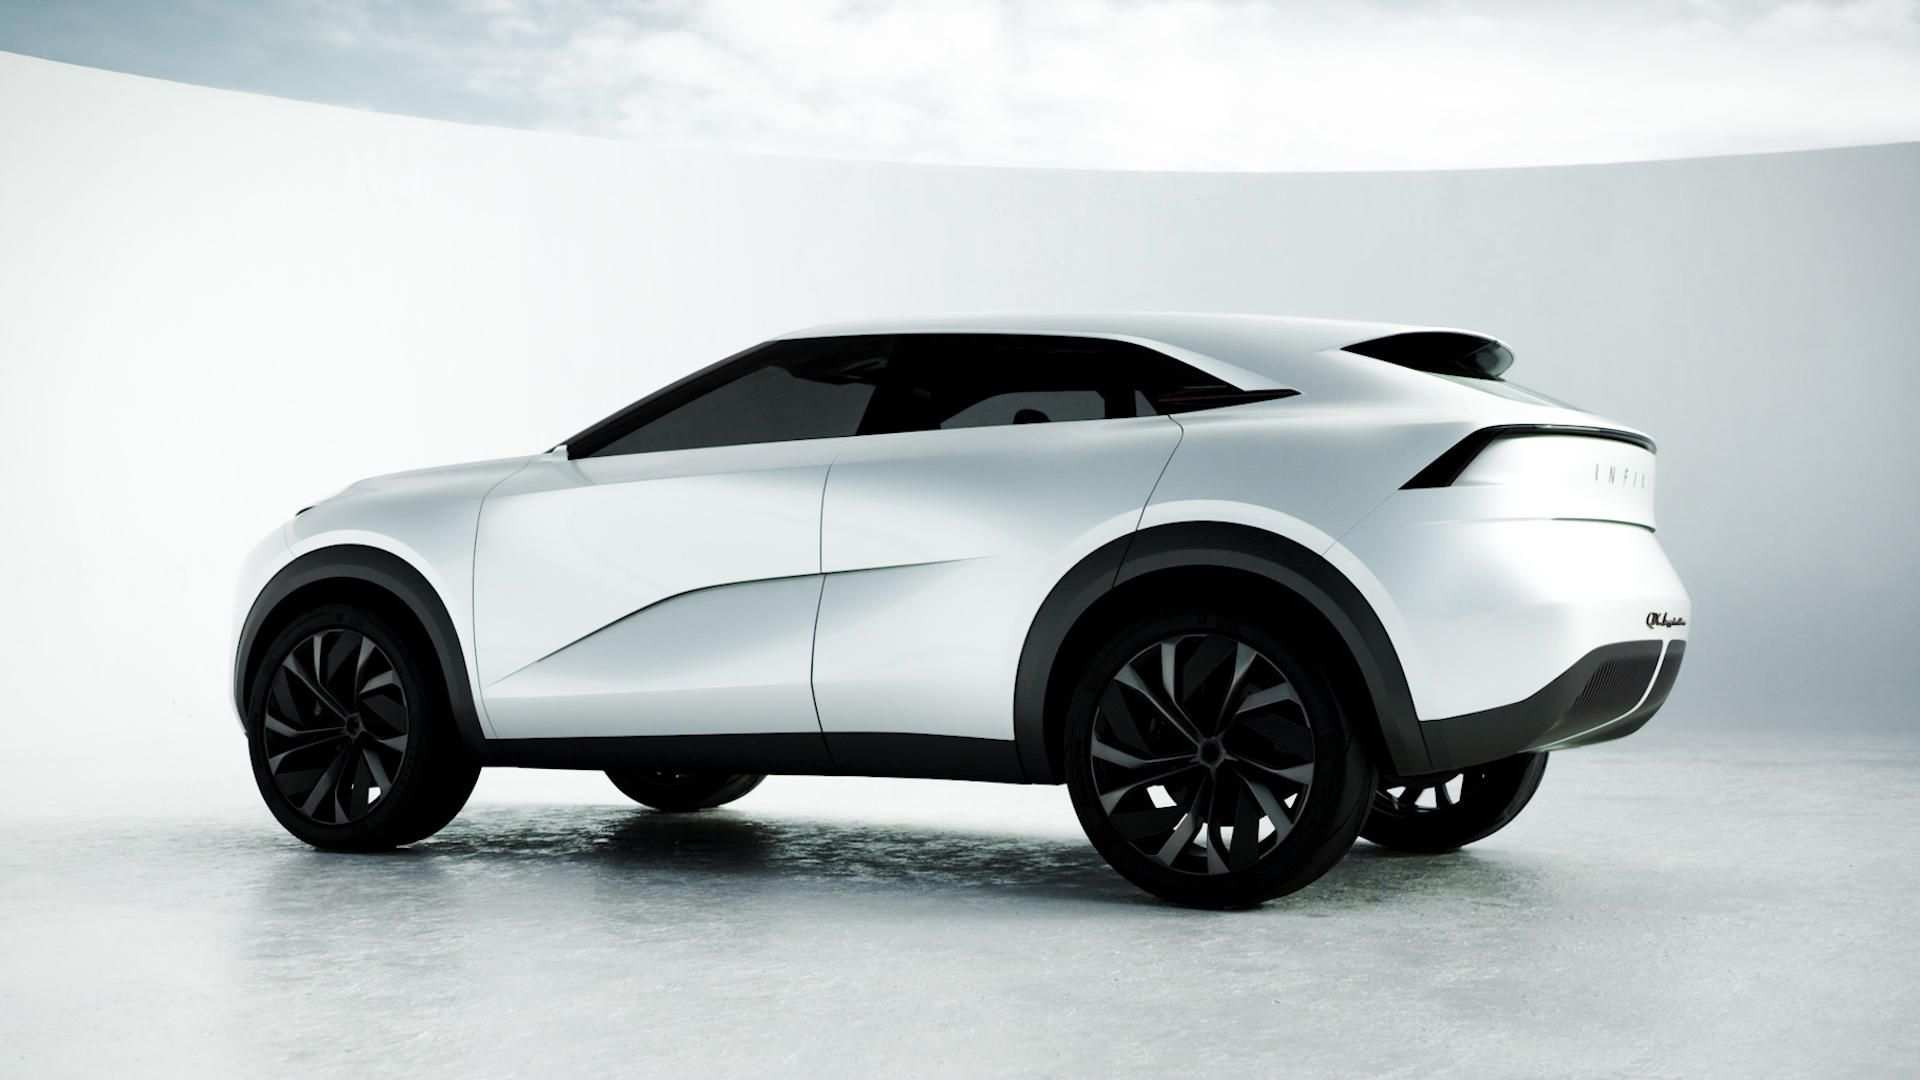 91 New Infiniti Concept 2020 Release Date And Concept